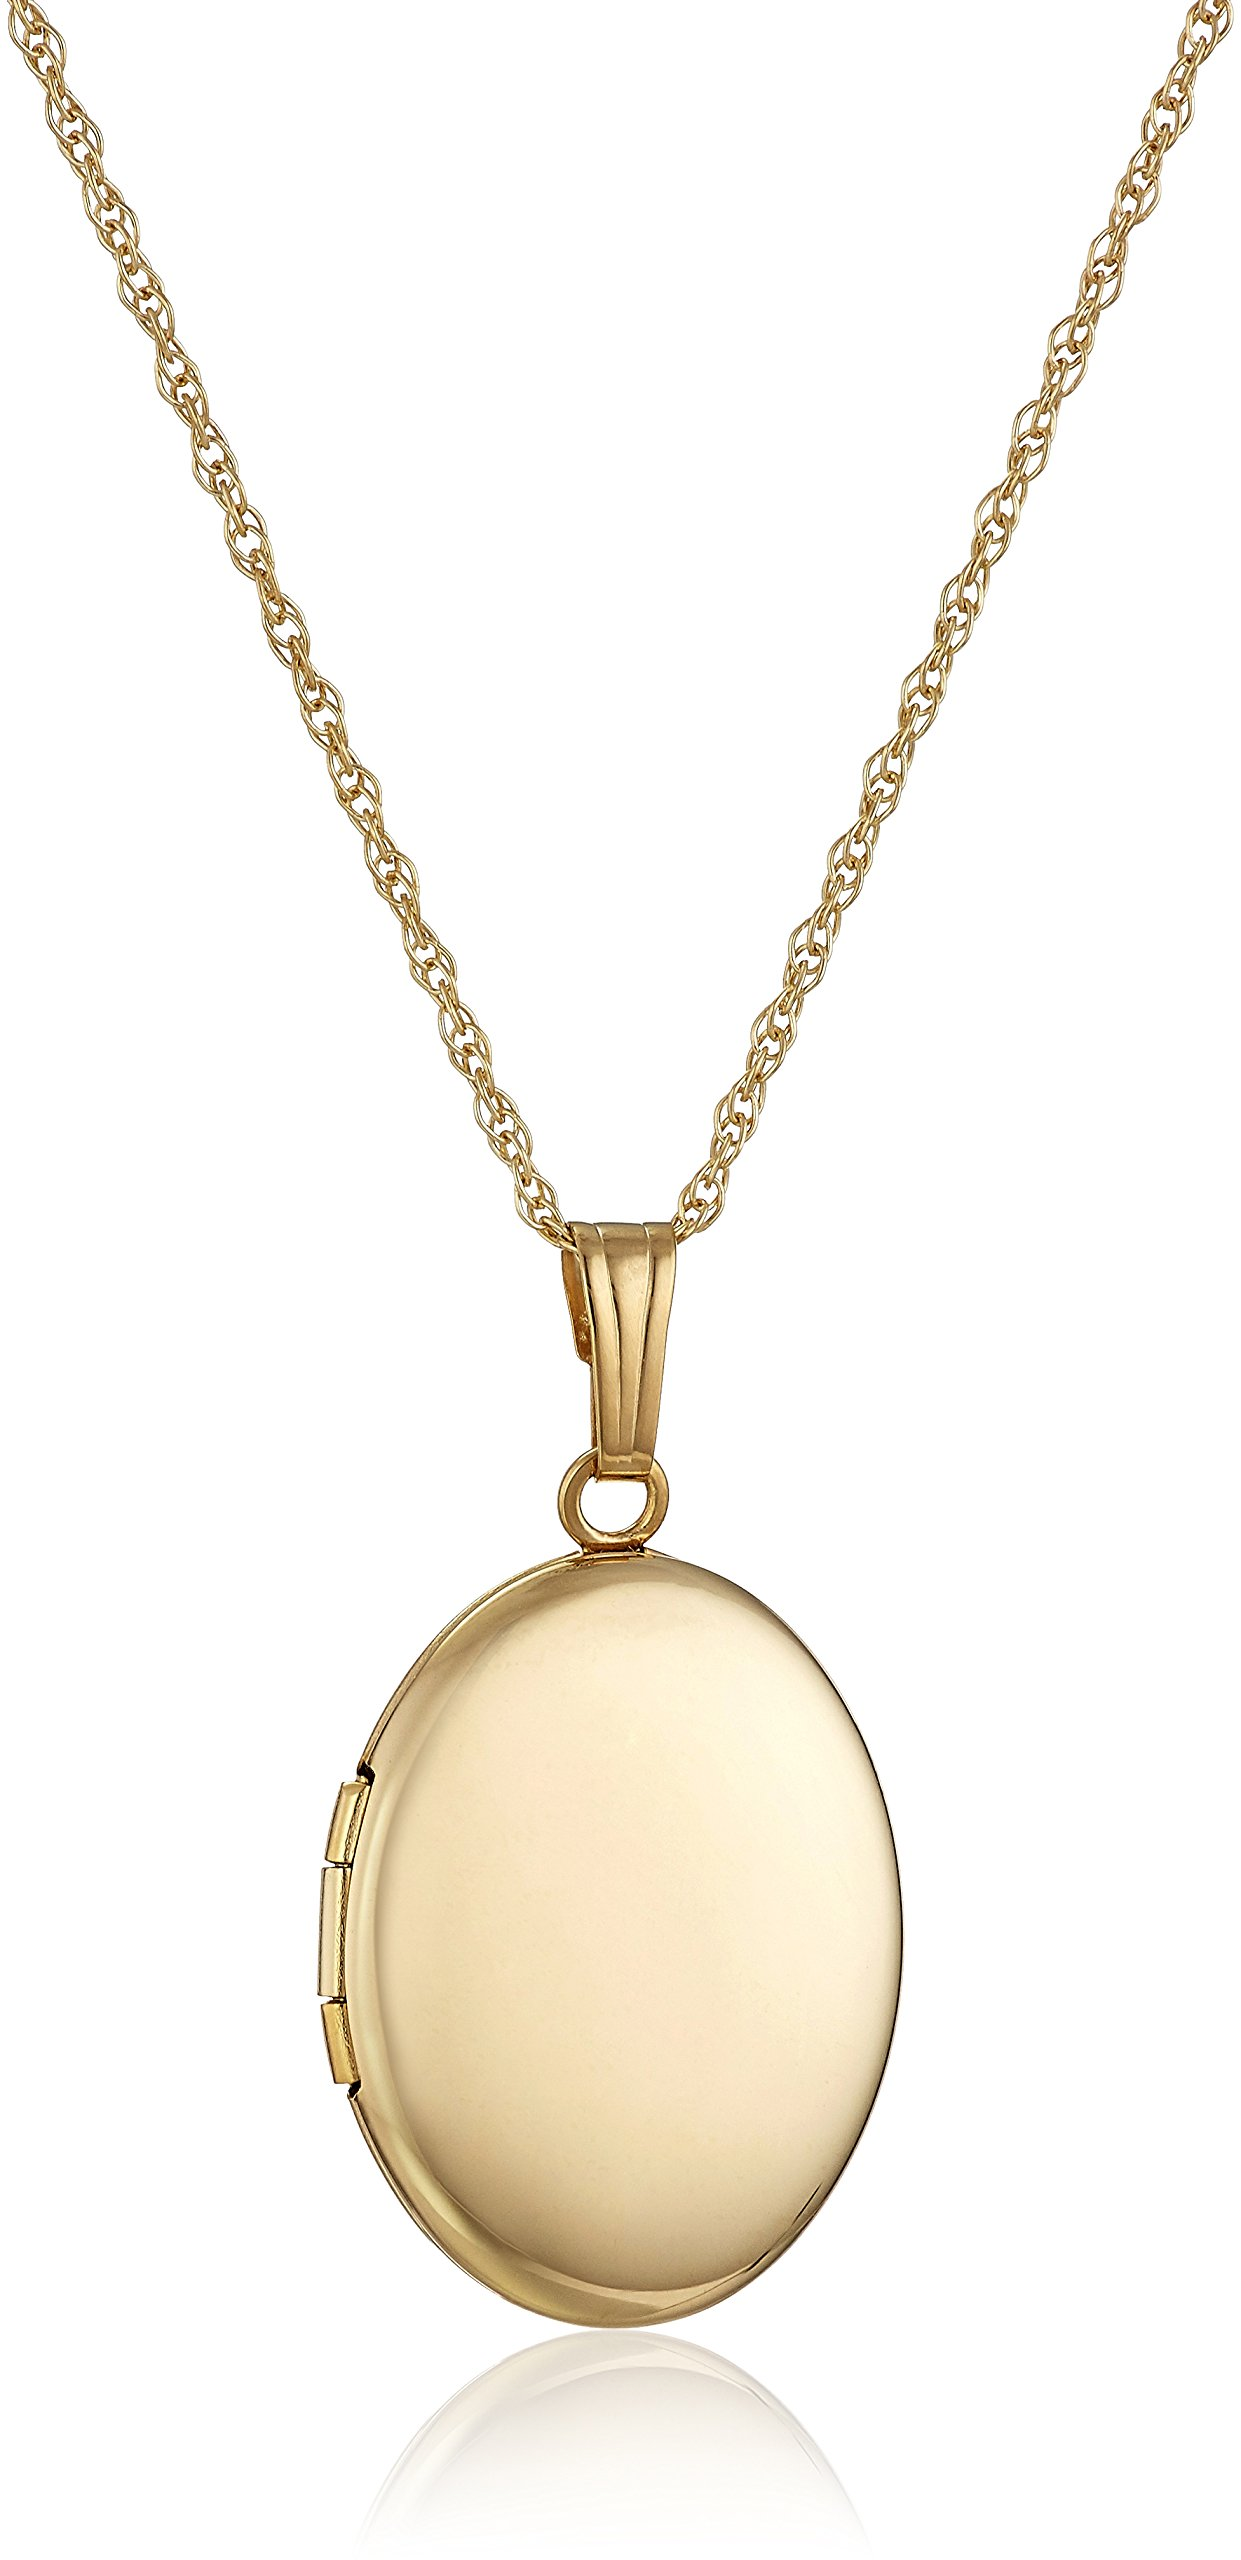 14k Yellow Gold Polished Oval Locket Necklace, 18''